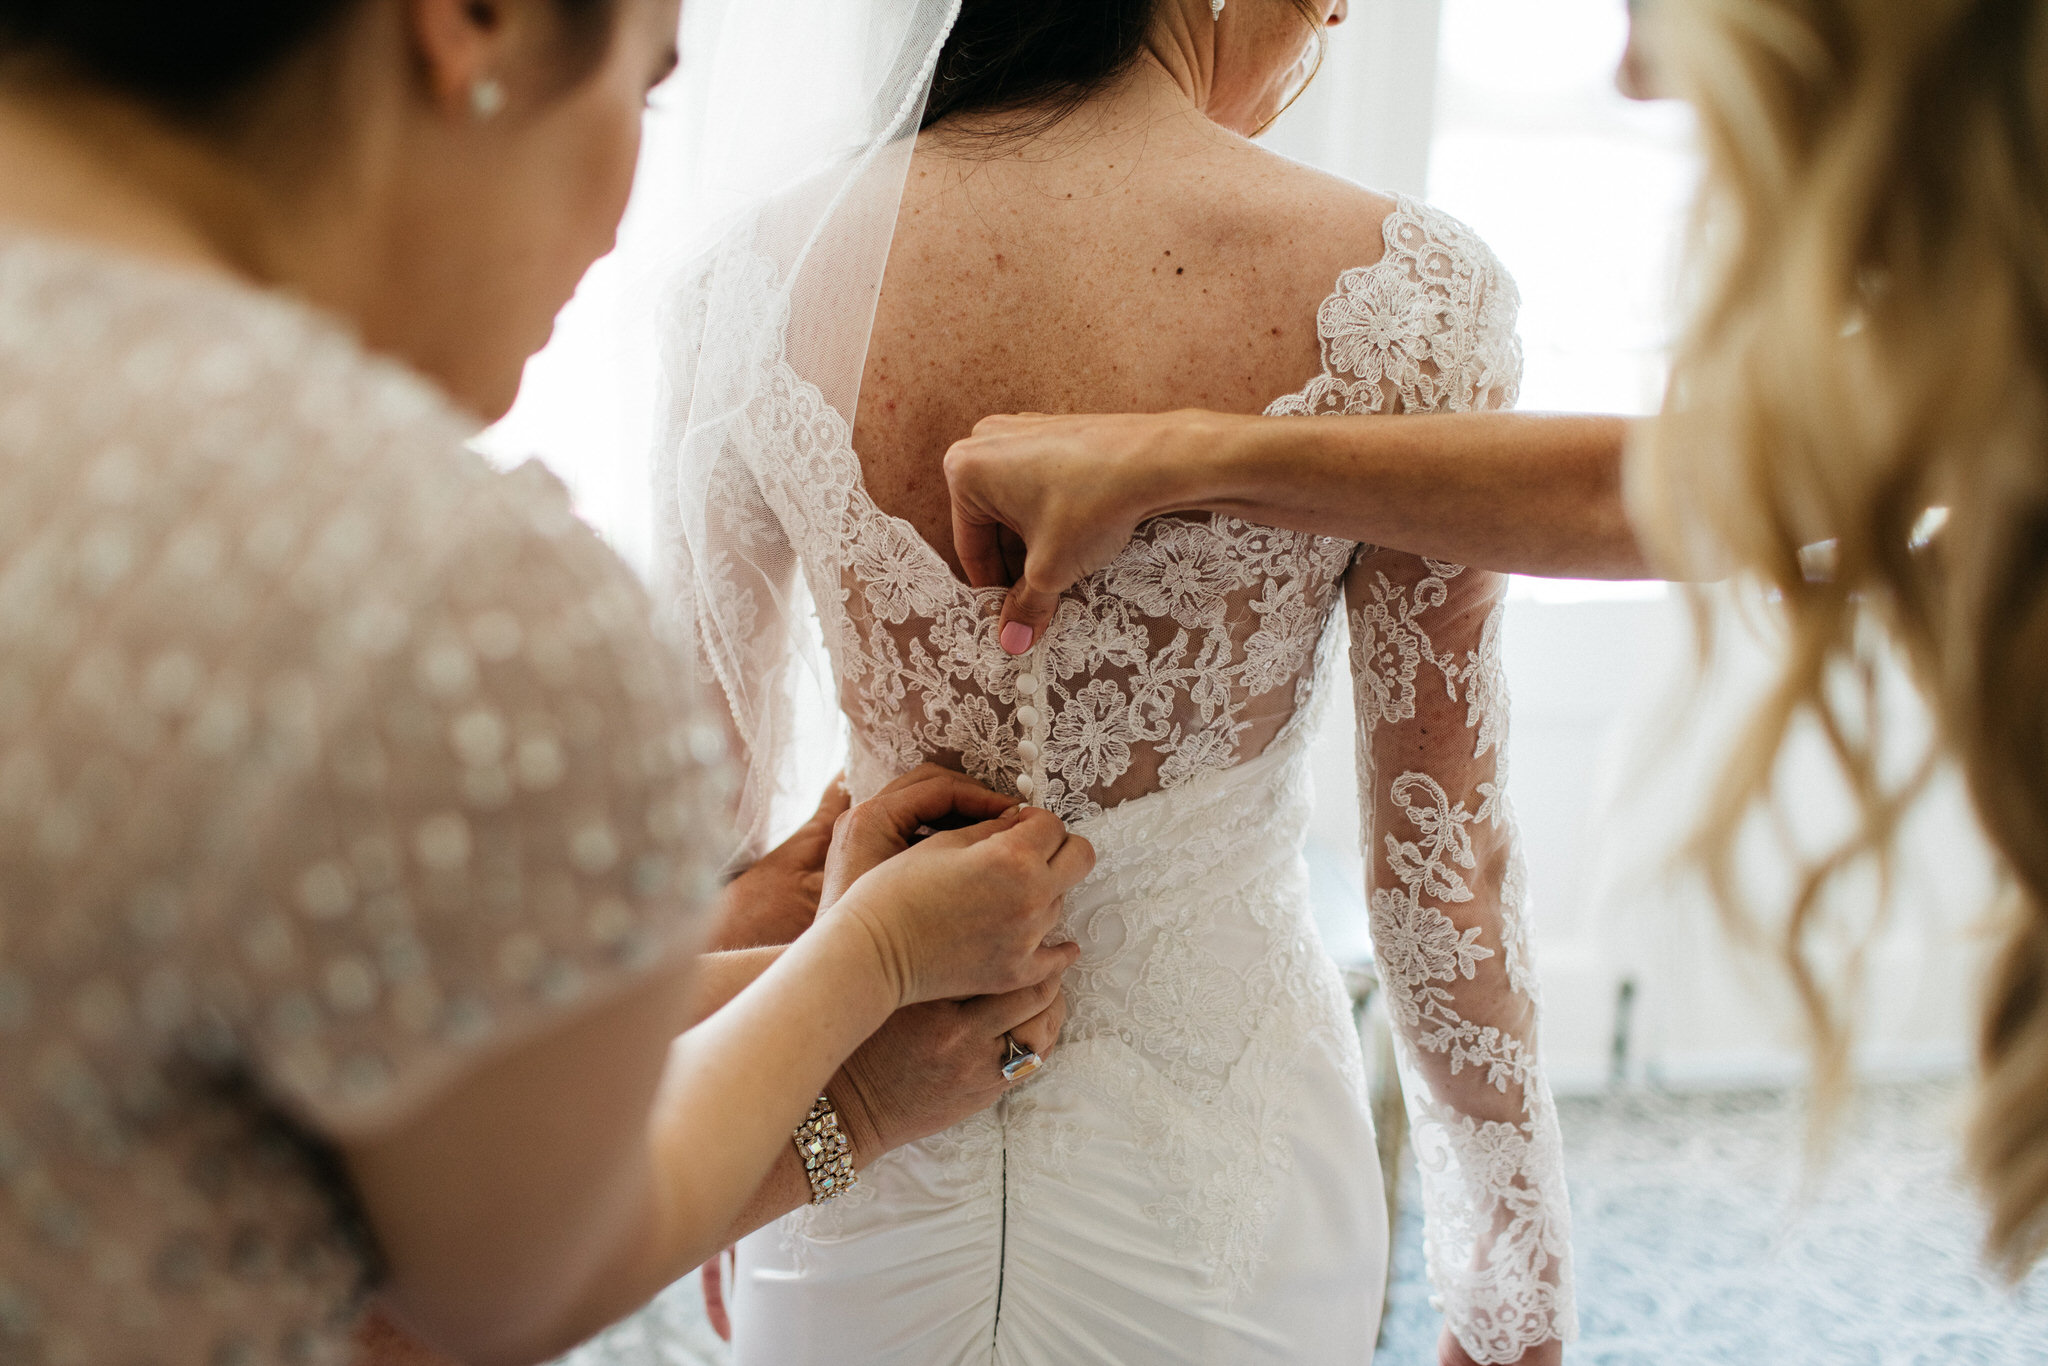 mother daughter, first look, toronto wedding, lace, wedding, beauty, getting ready, love, details, curated, wedding photography, toronto, canada, female photographer, traditional wedding, tradition